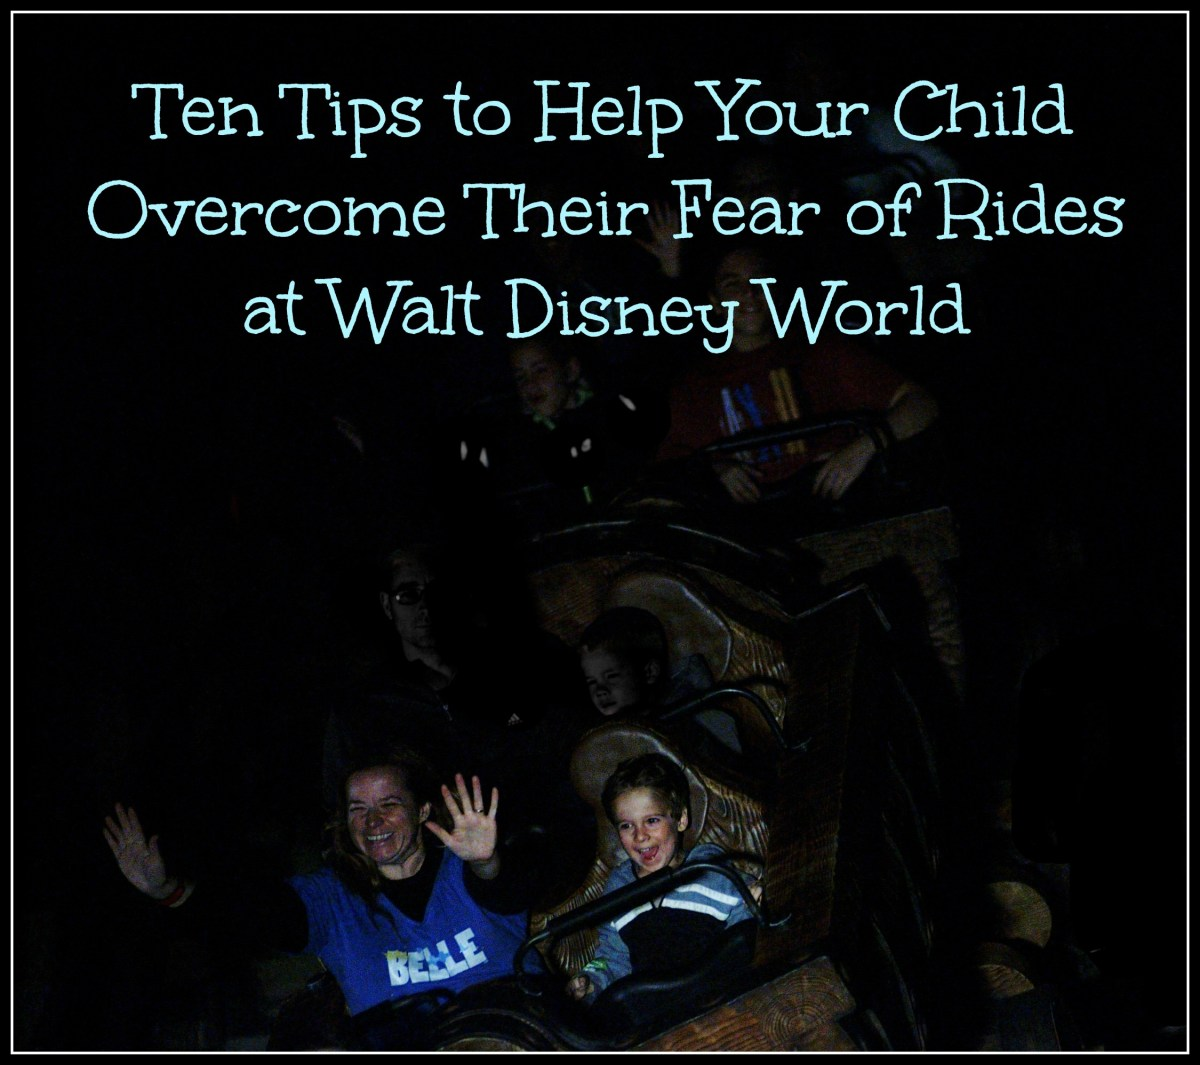 Ten Tips to Help Your Child Overcome Fear of Rides at Walt Disney World